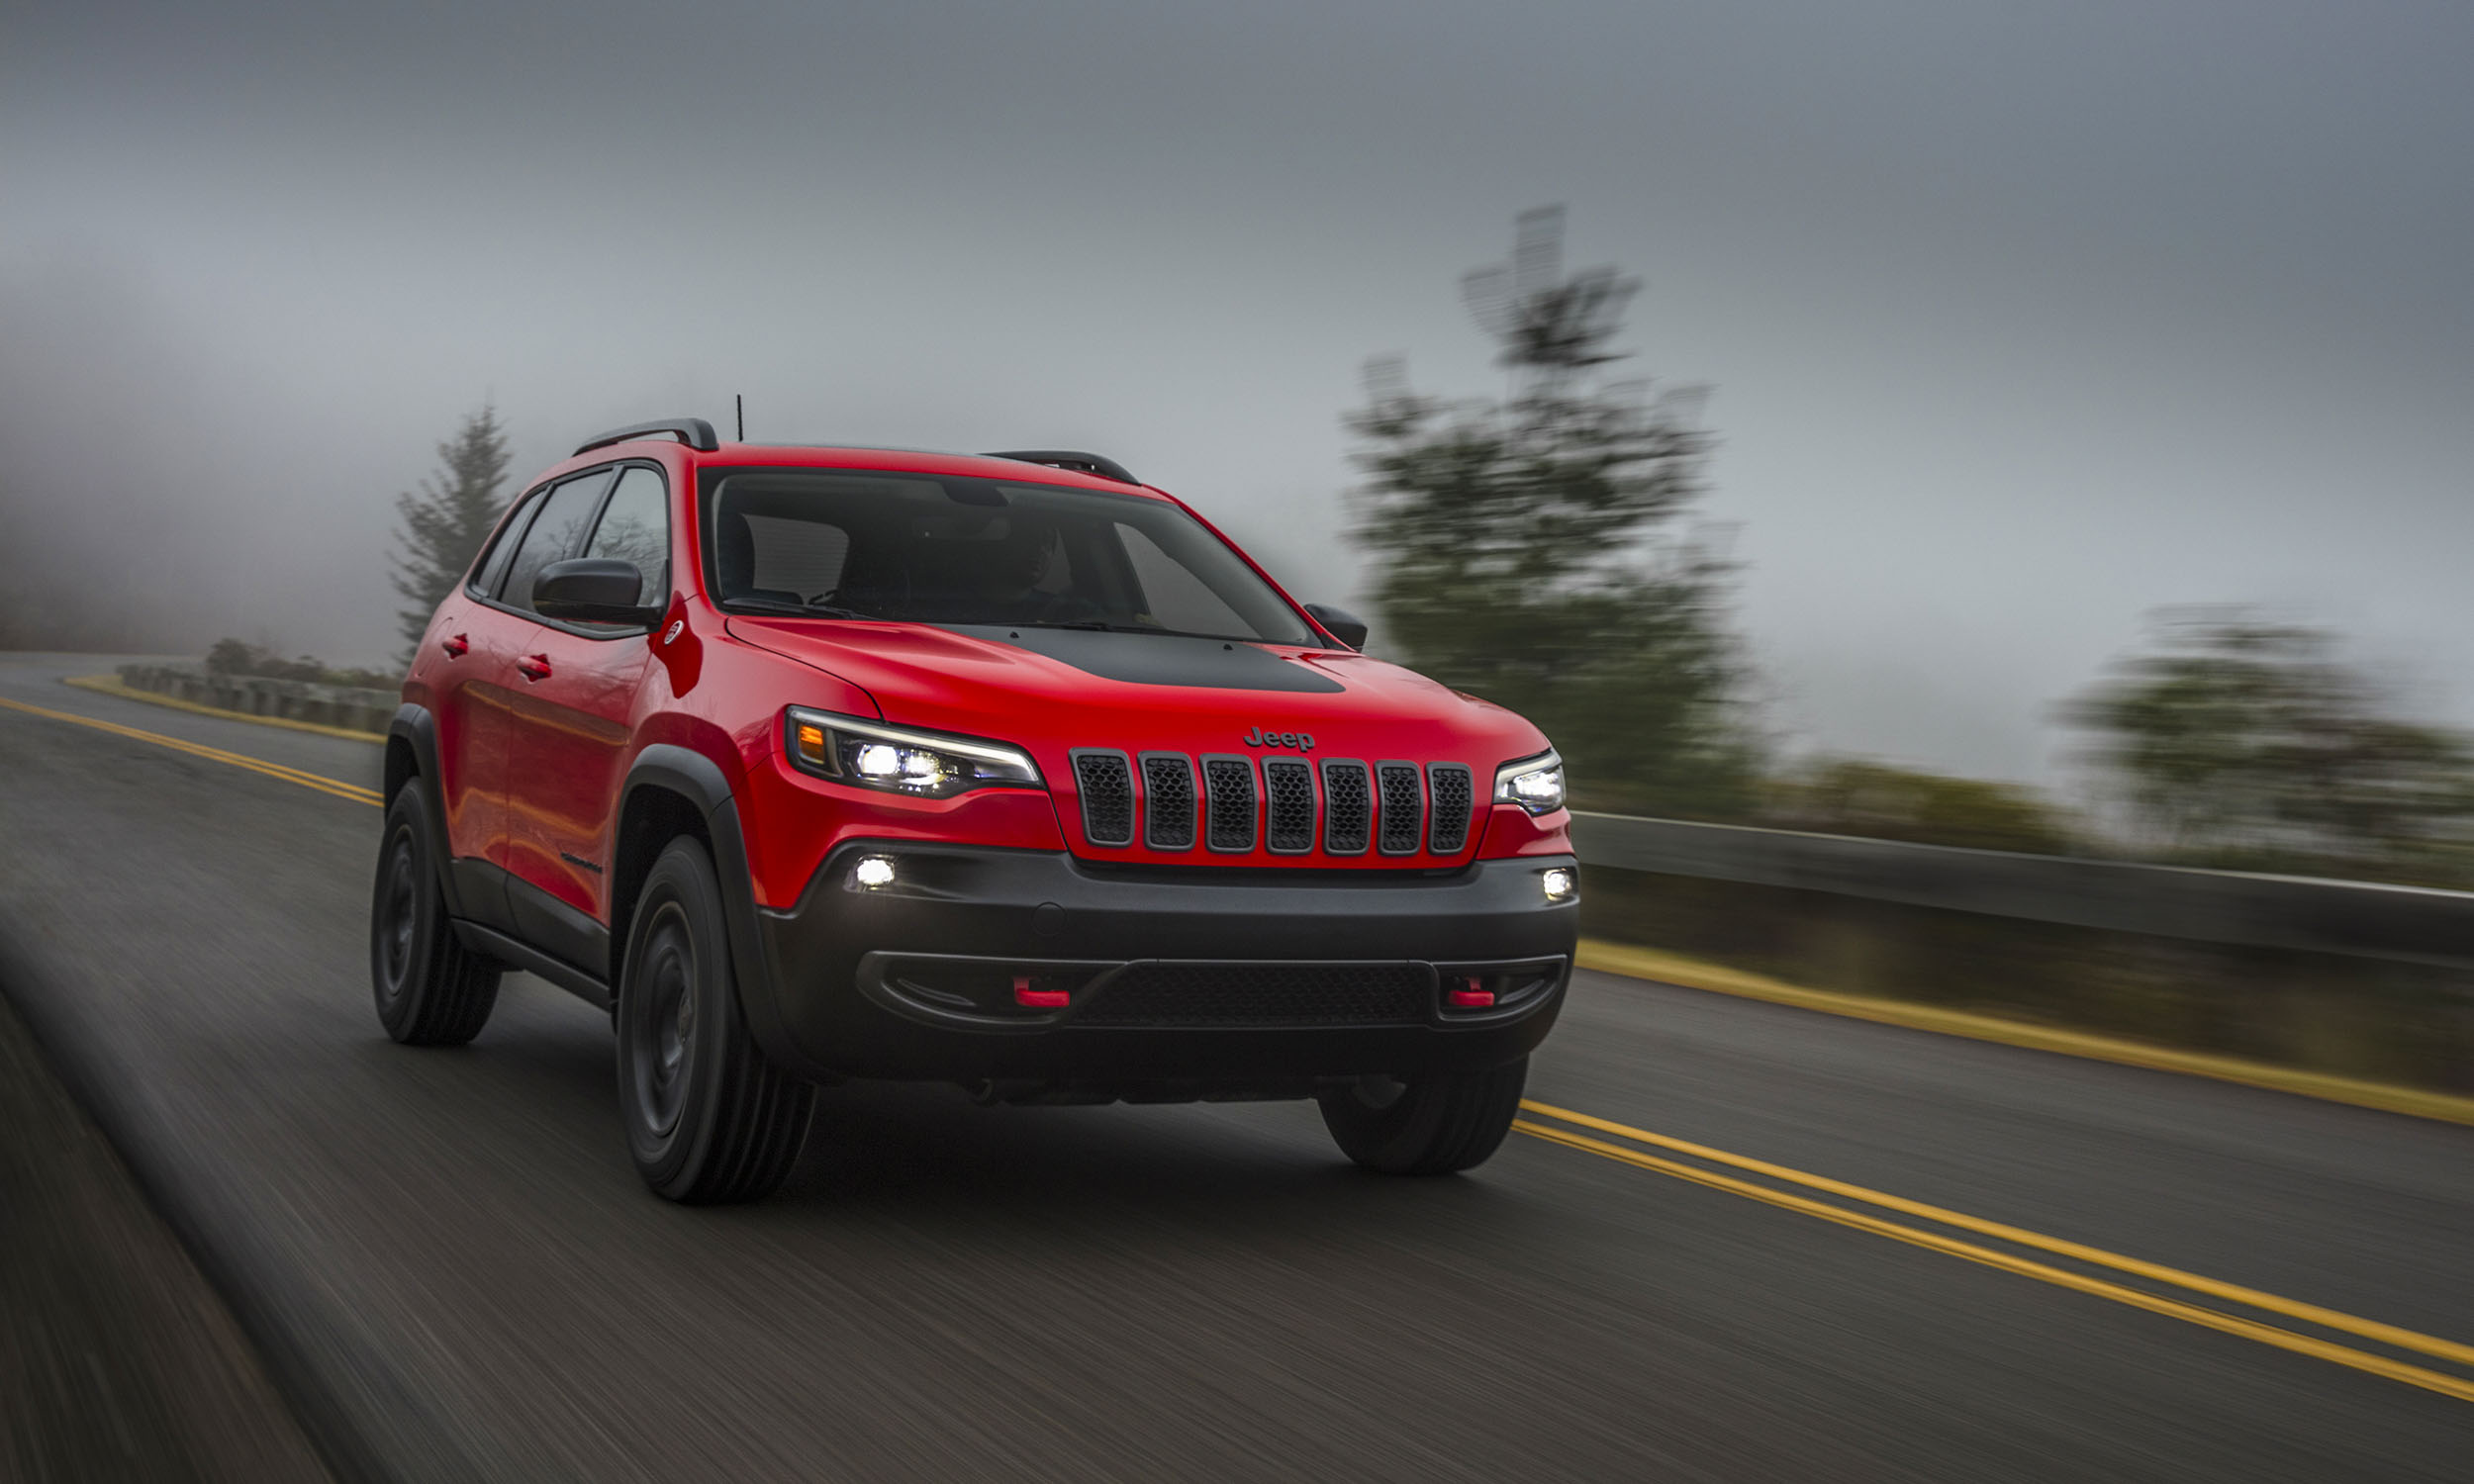 For 2019 The Iconic Cherokee Gets A Complete Refresh U2014 The First Since The  Model Returned To The Jeep Lineup In 2014. The New Design Brings The  Exterior ...